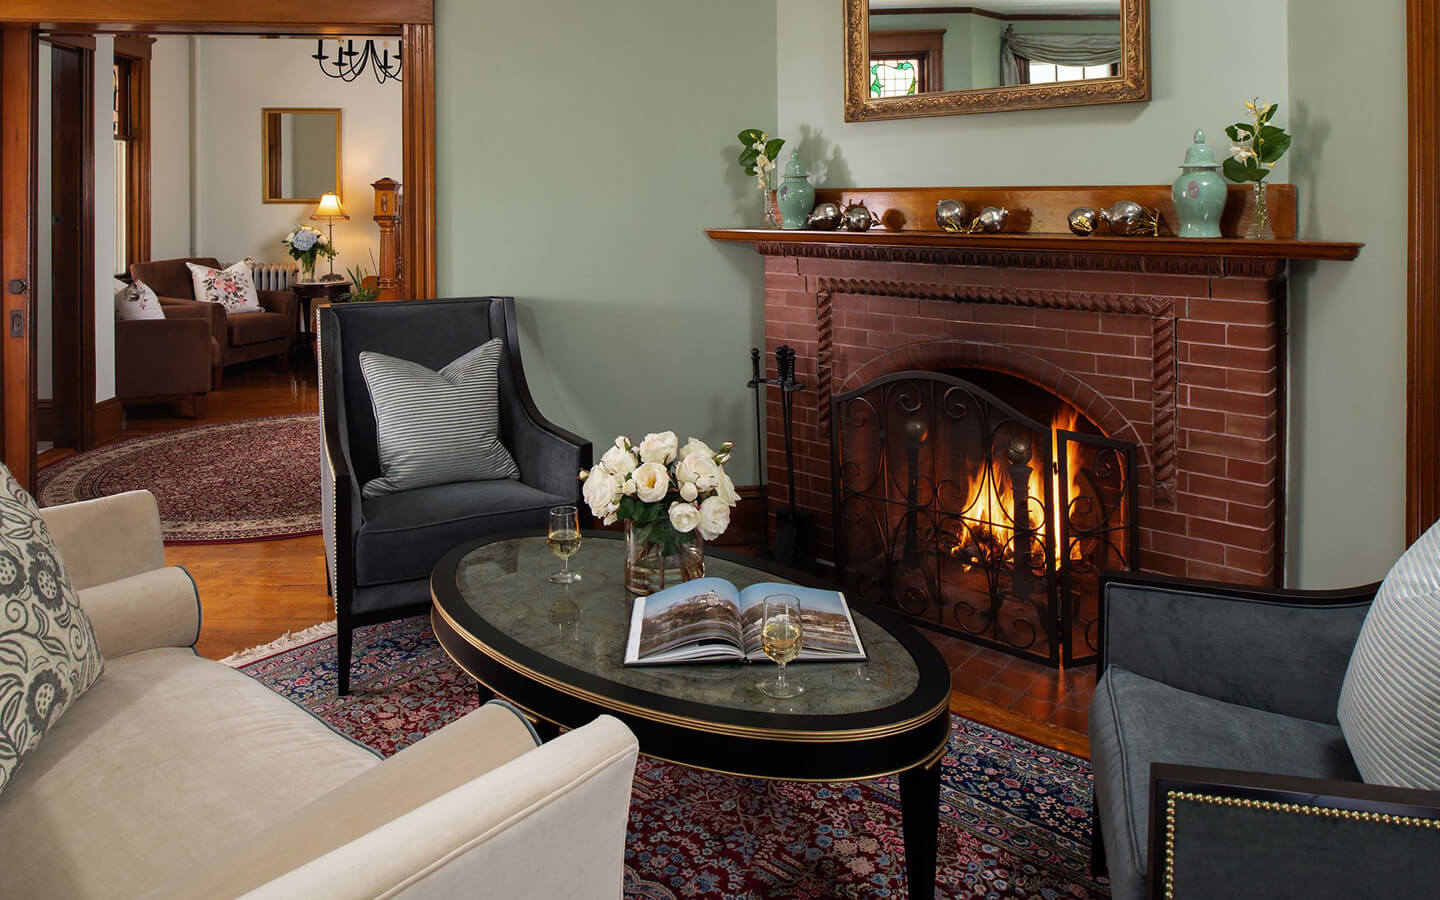 Sitting room with table and fireplace